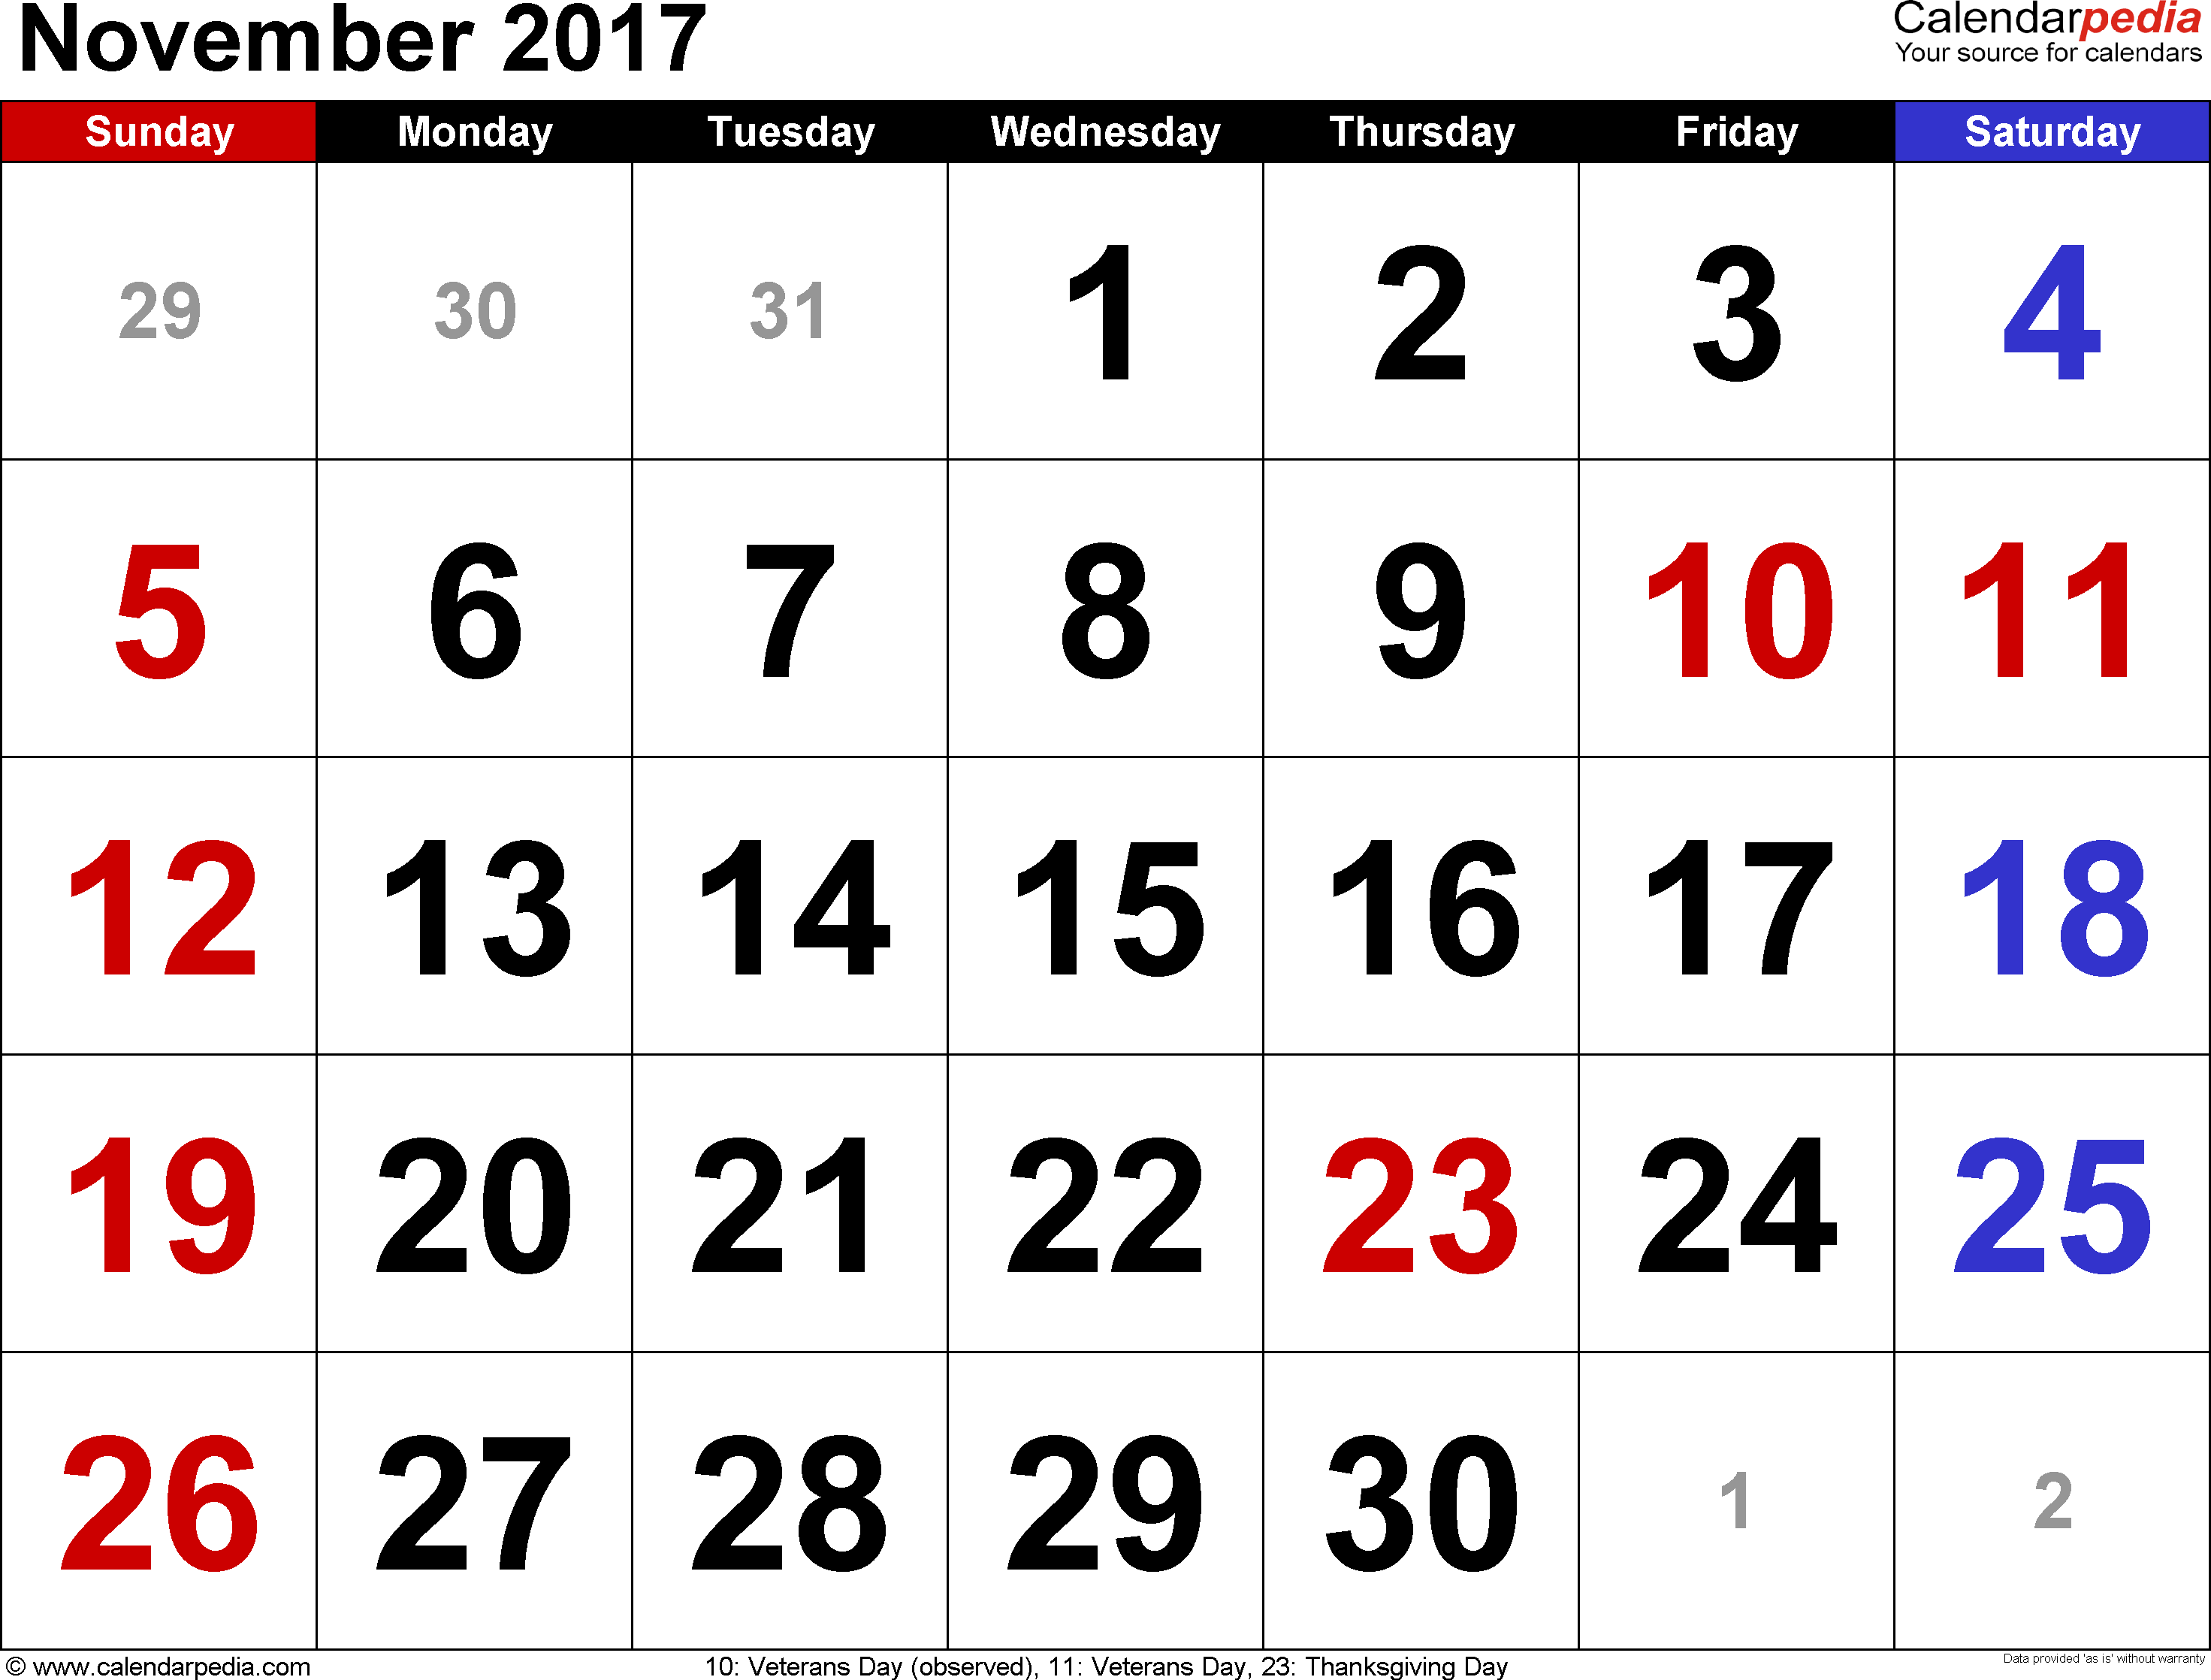 November 2017 Calendars for Word, Excel & PDF